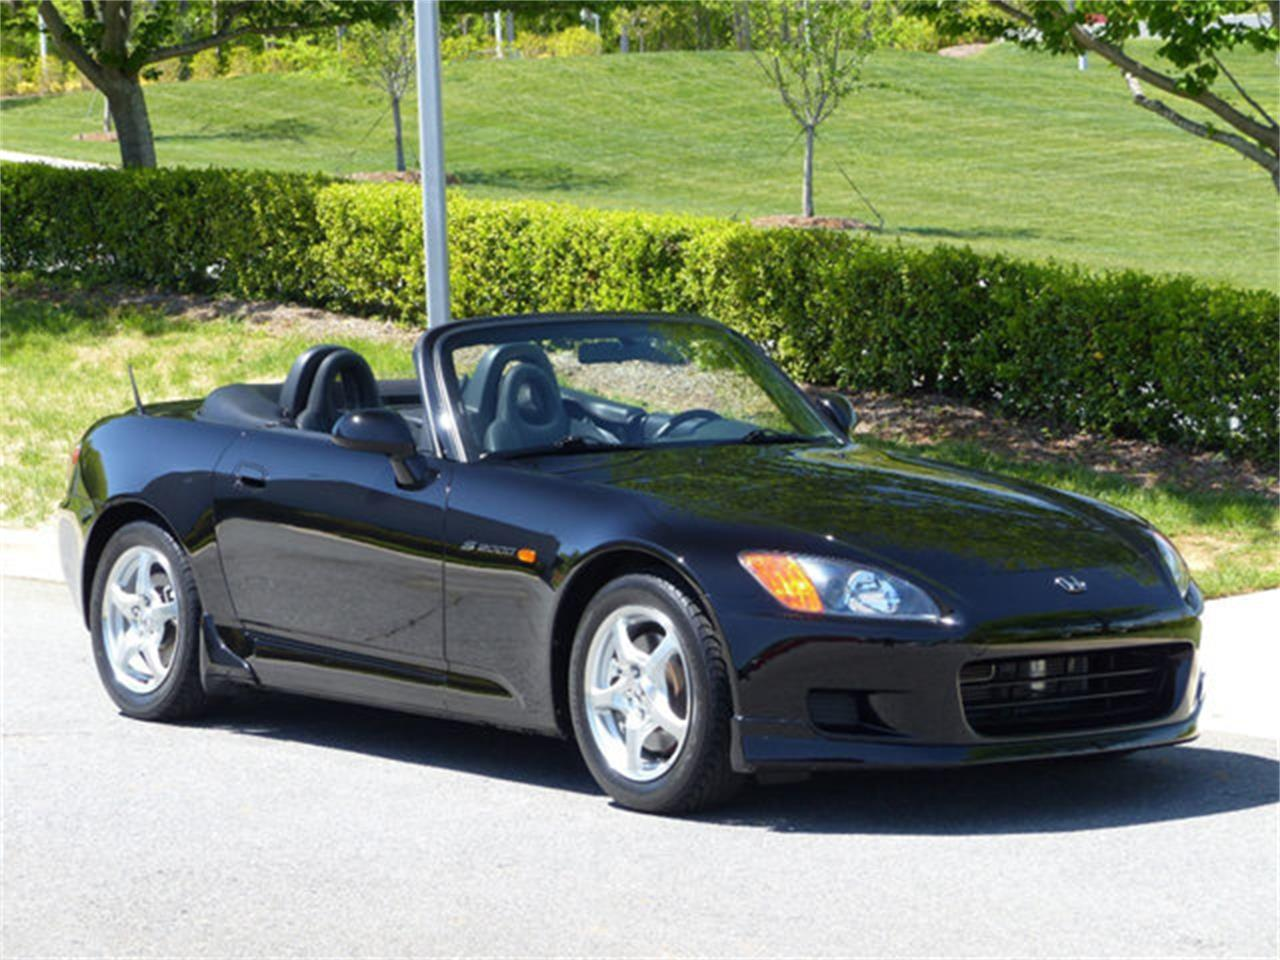 Large Picture of '00 Honda S2000 - $39,990.00 - NAWS